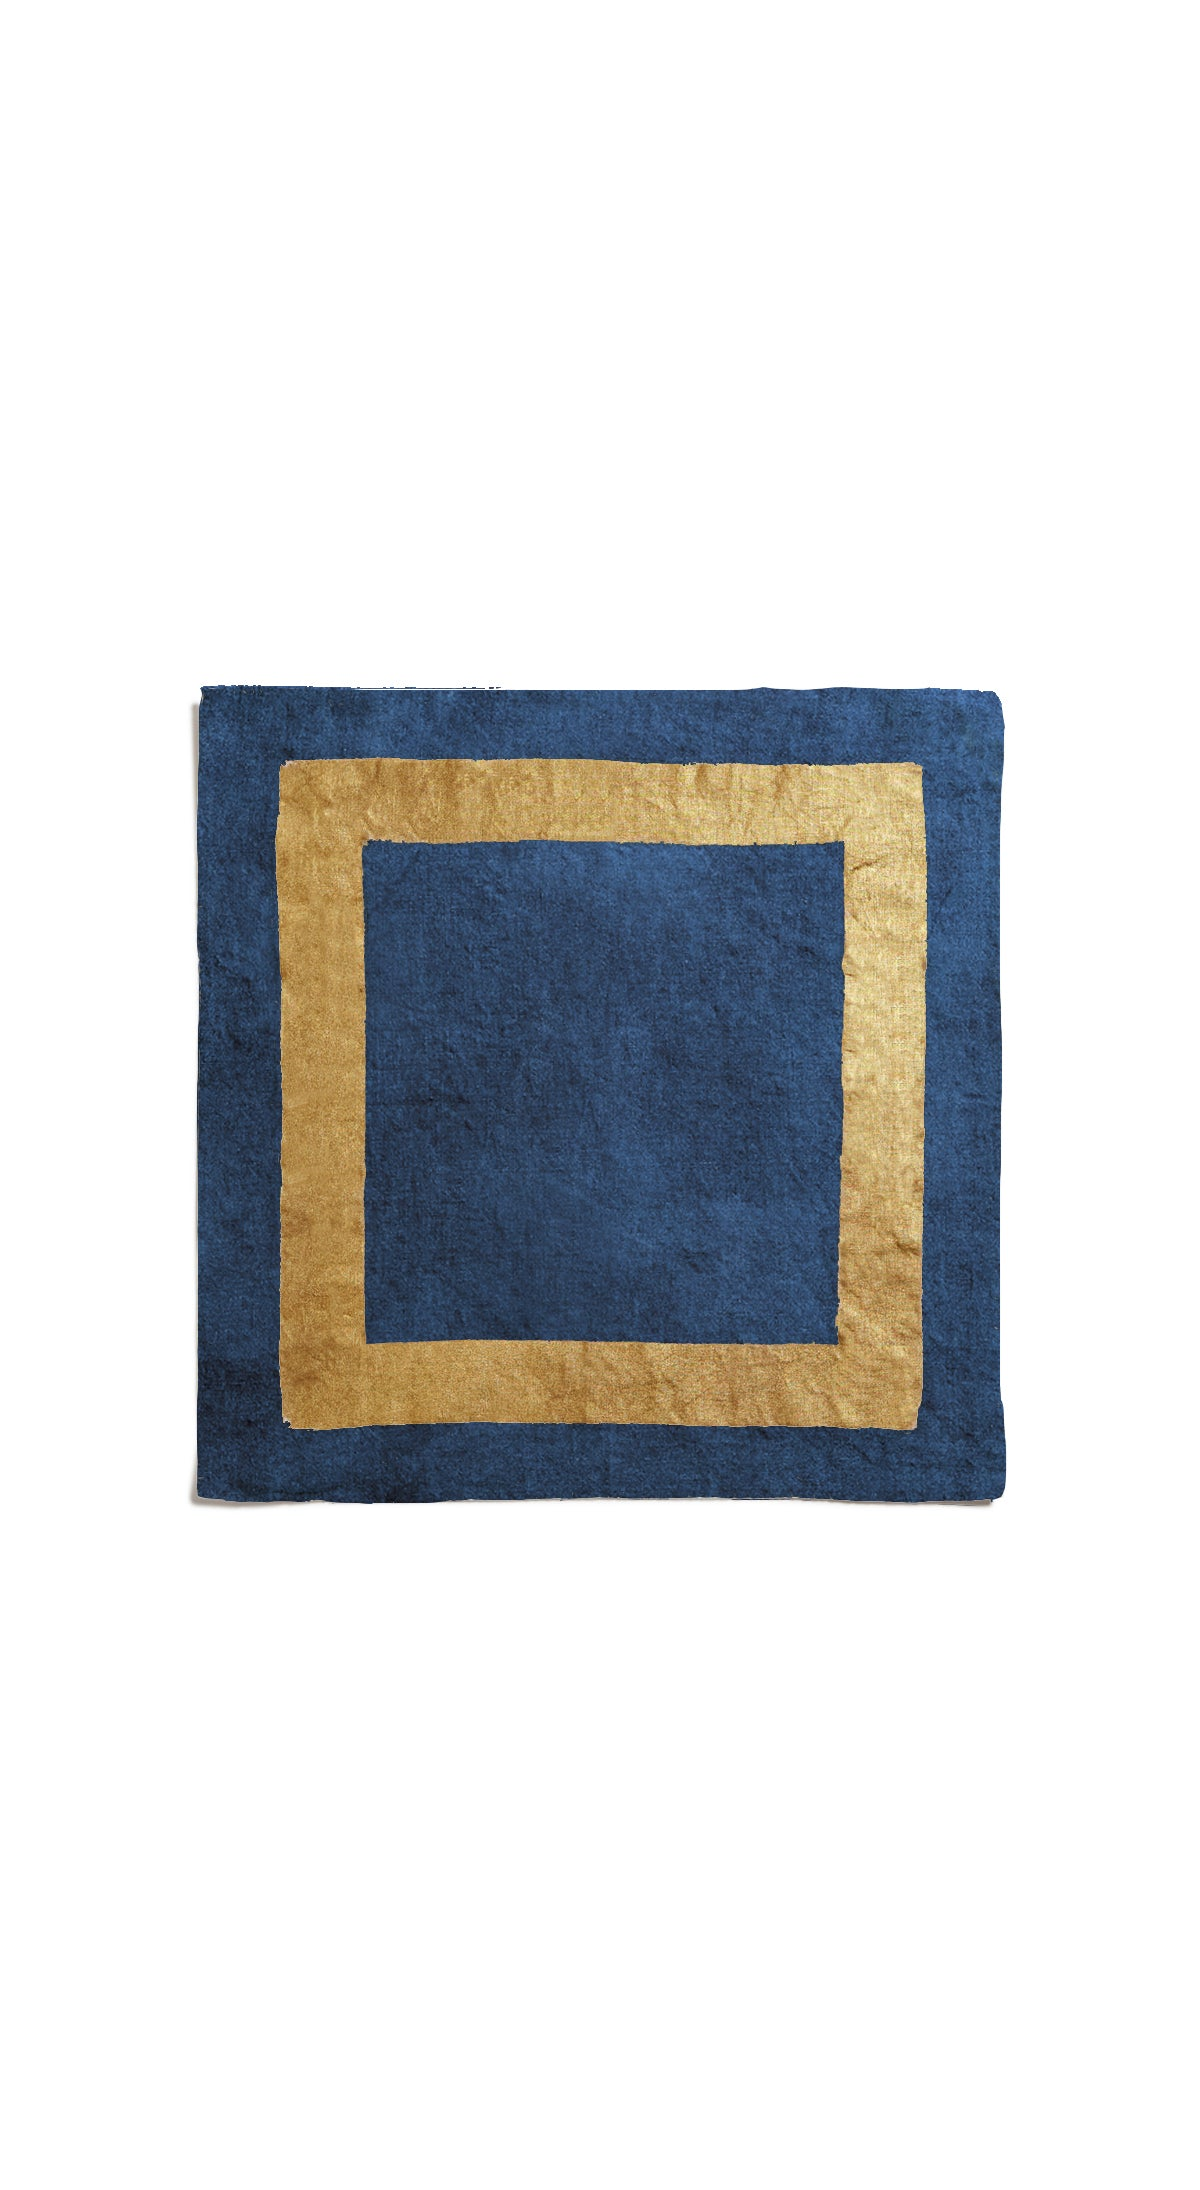 Full Field Cornice Linen Napkin in Midnight Blue & Gold